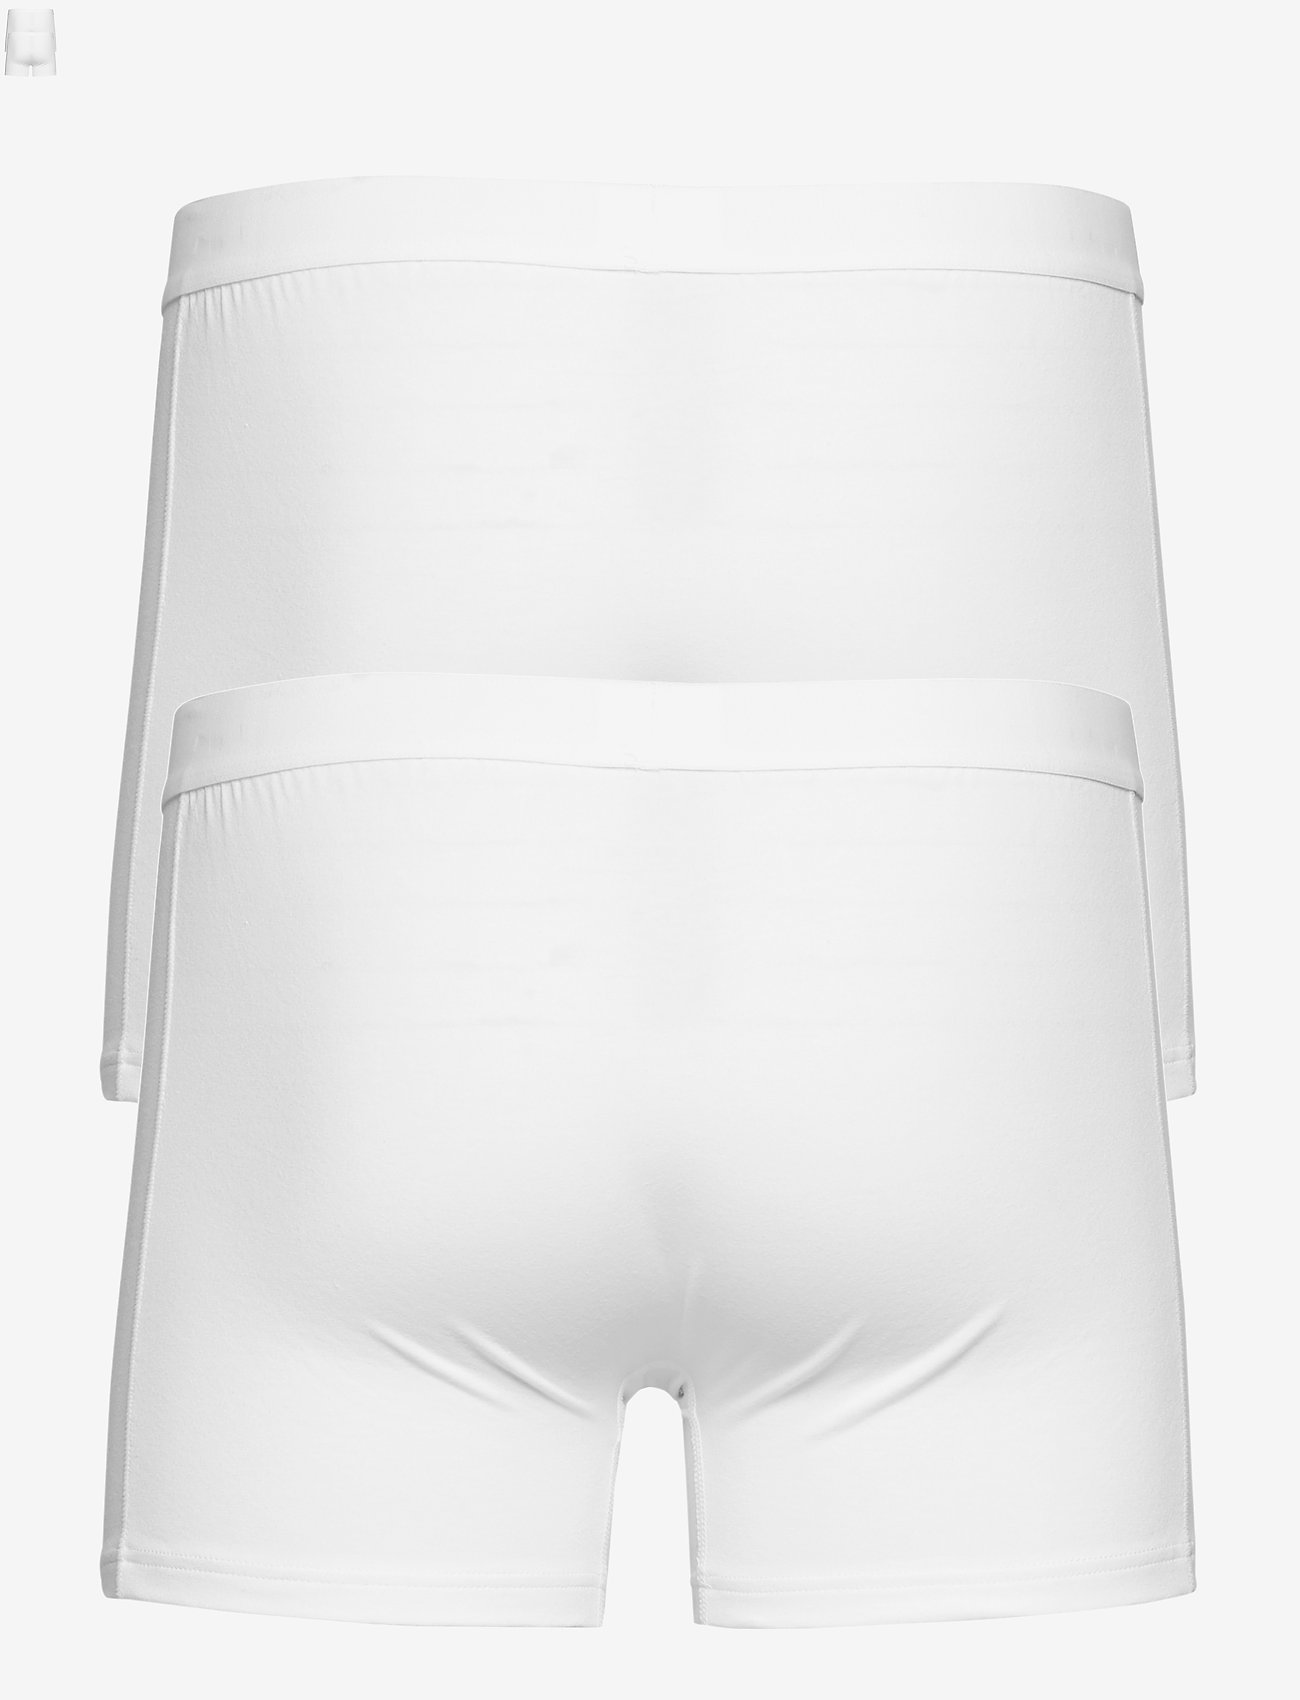 JBS of Denmark - JBS of Denmark trunks - underwear - white